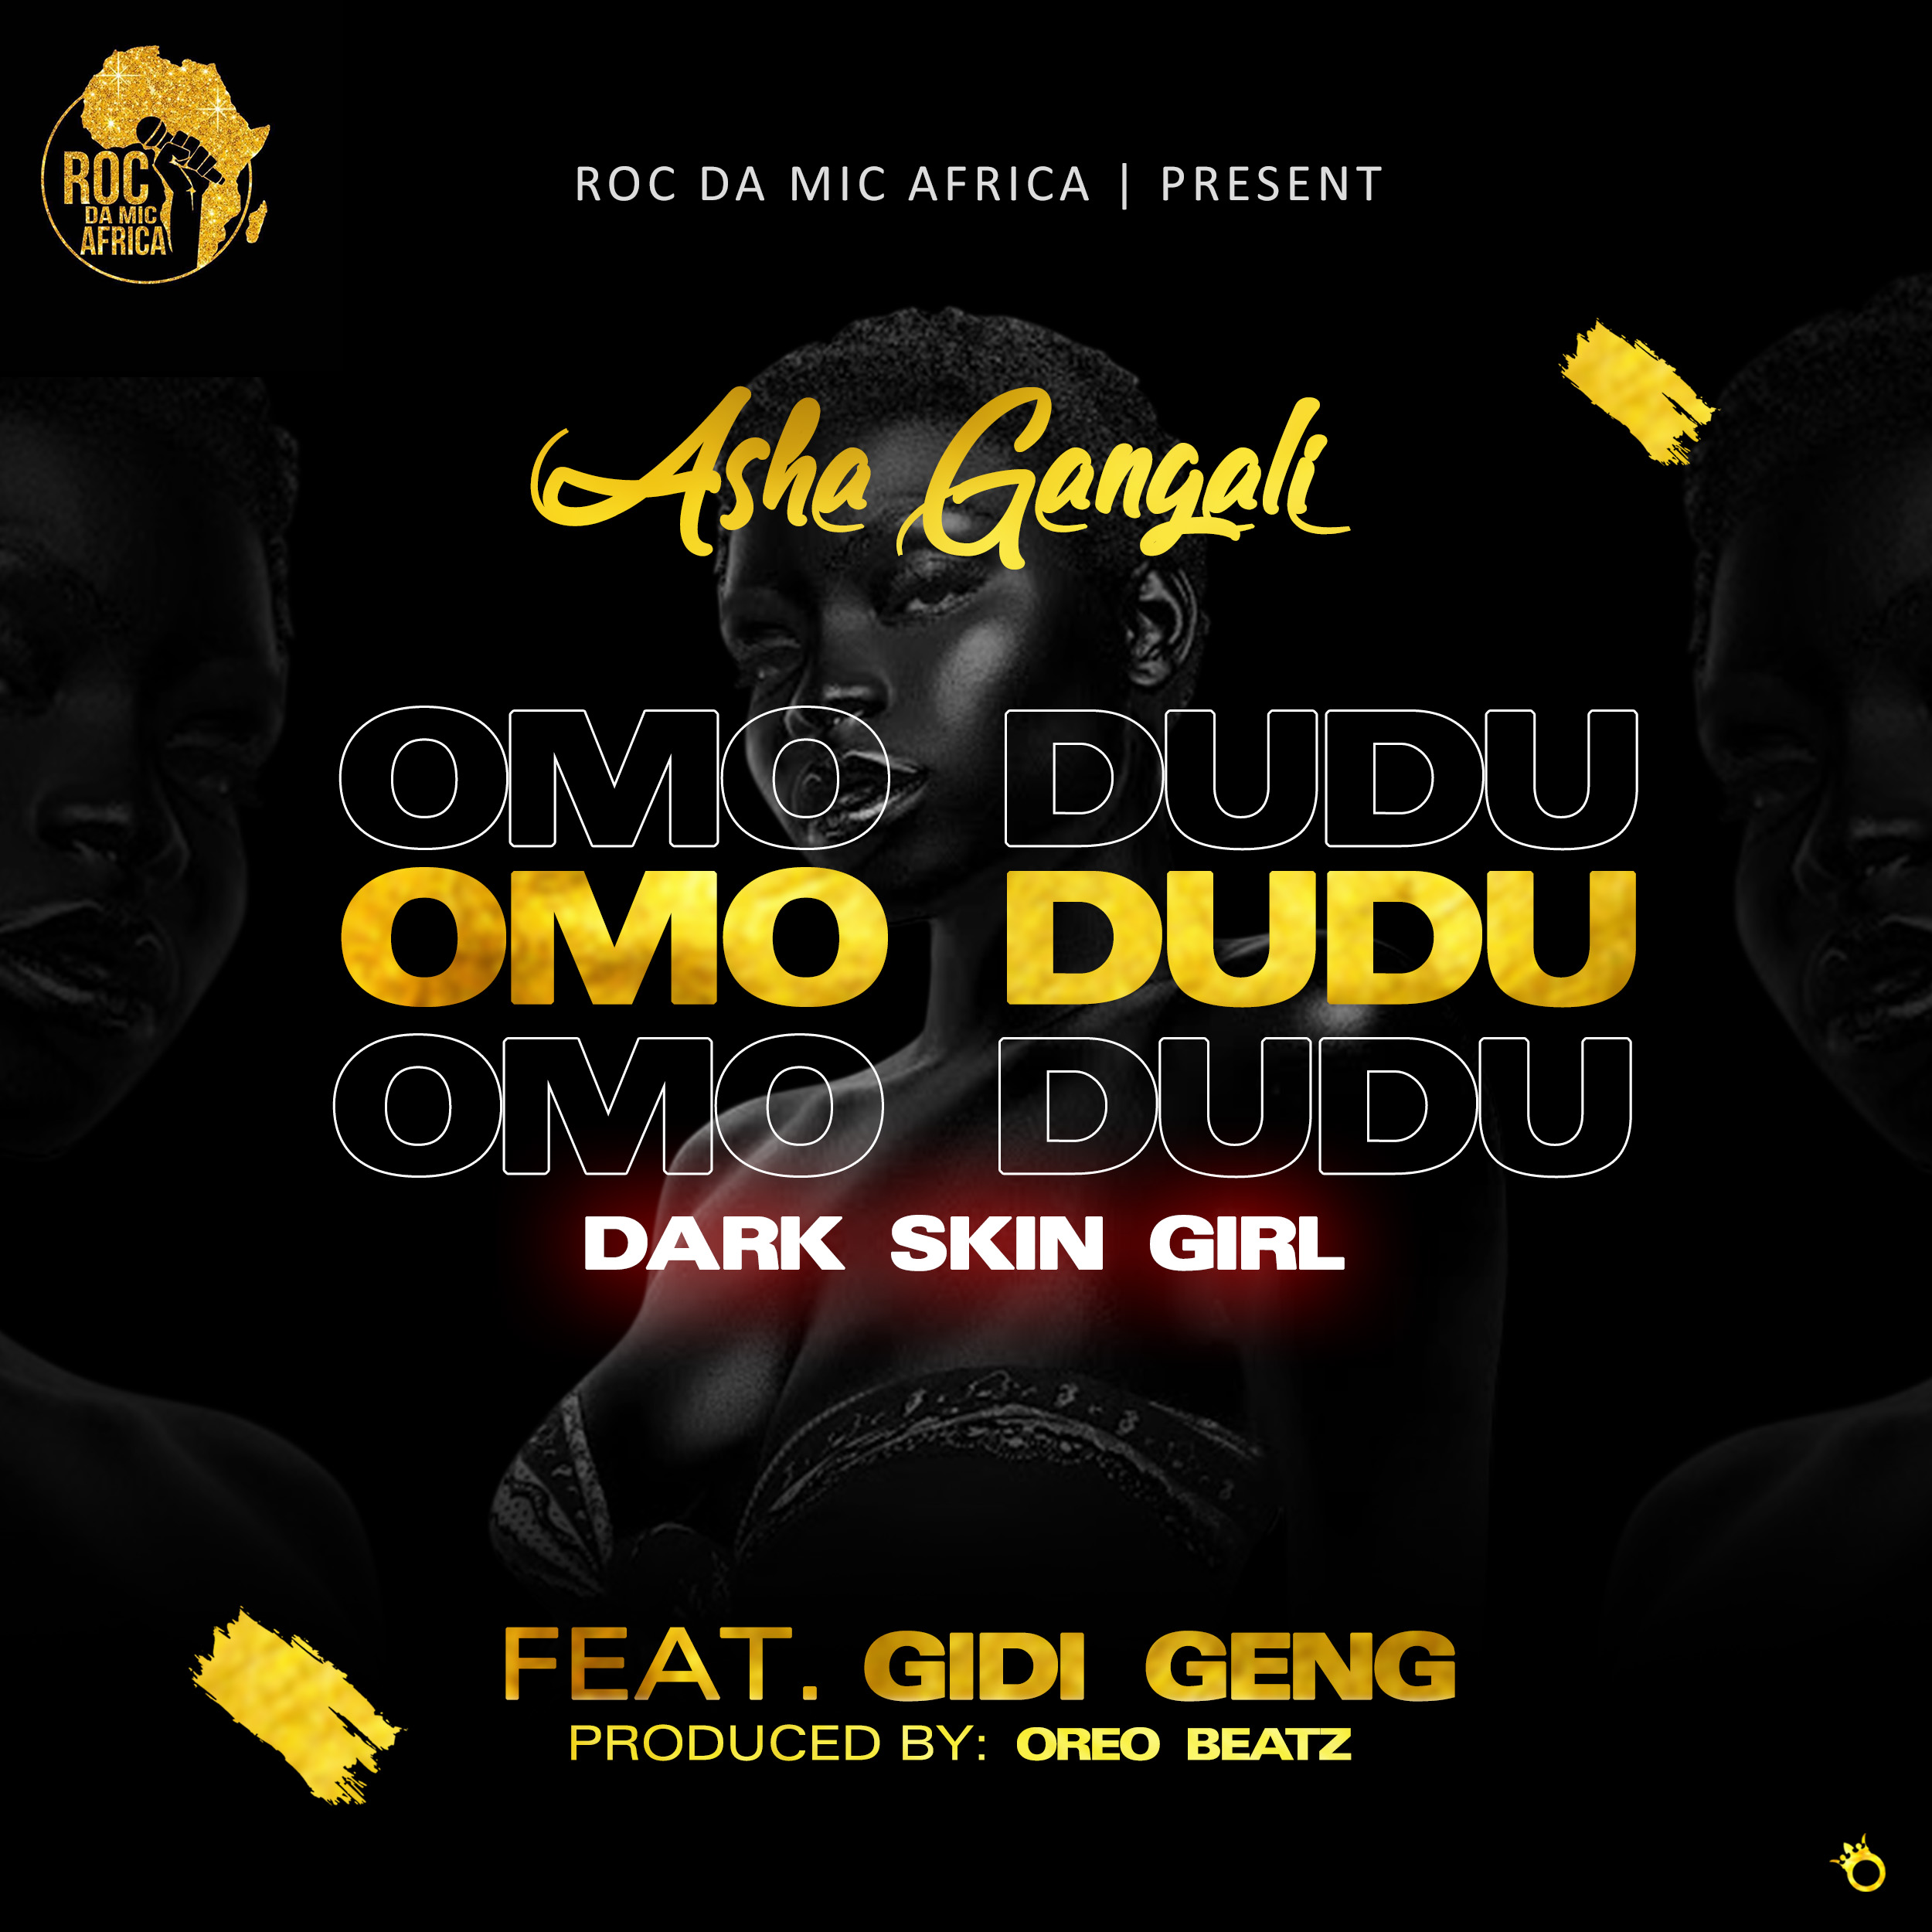 [Video] Asha Gangali Ft. Gidi Geng – Omo Dudu